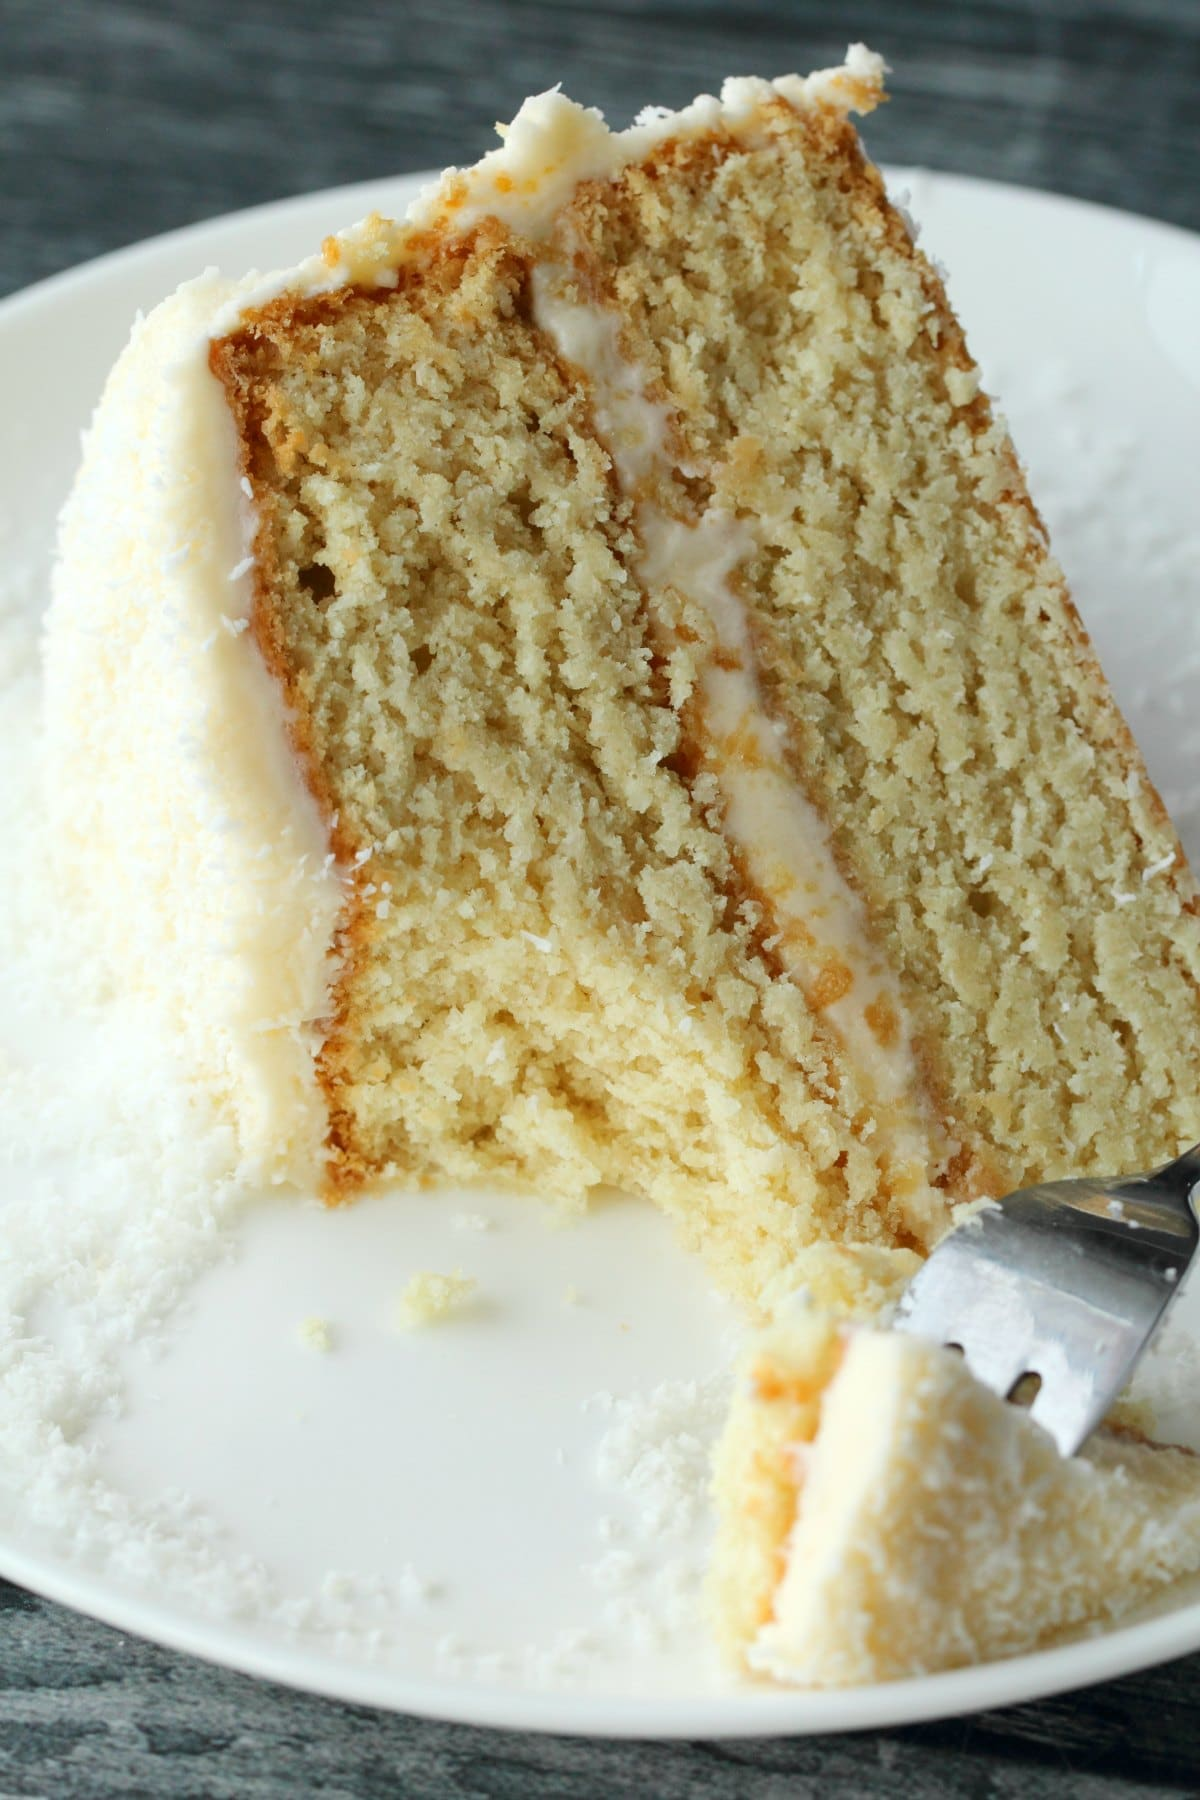 A slice of vegan coconut cake on a white plate with a cake fork.